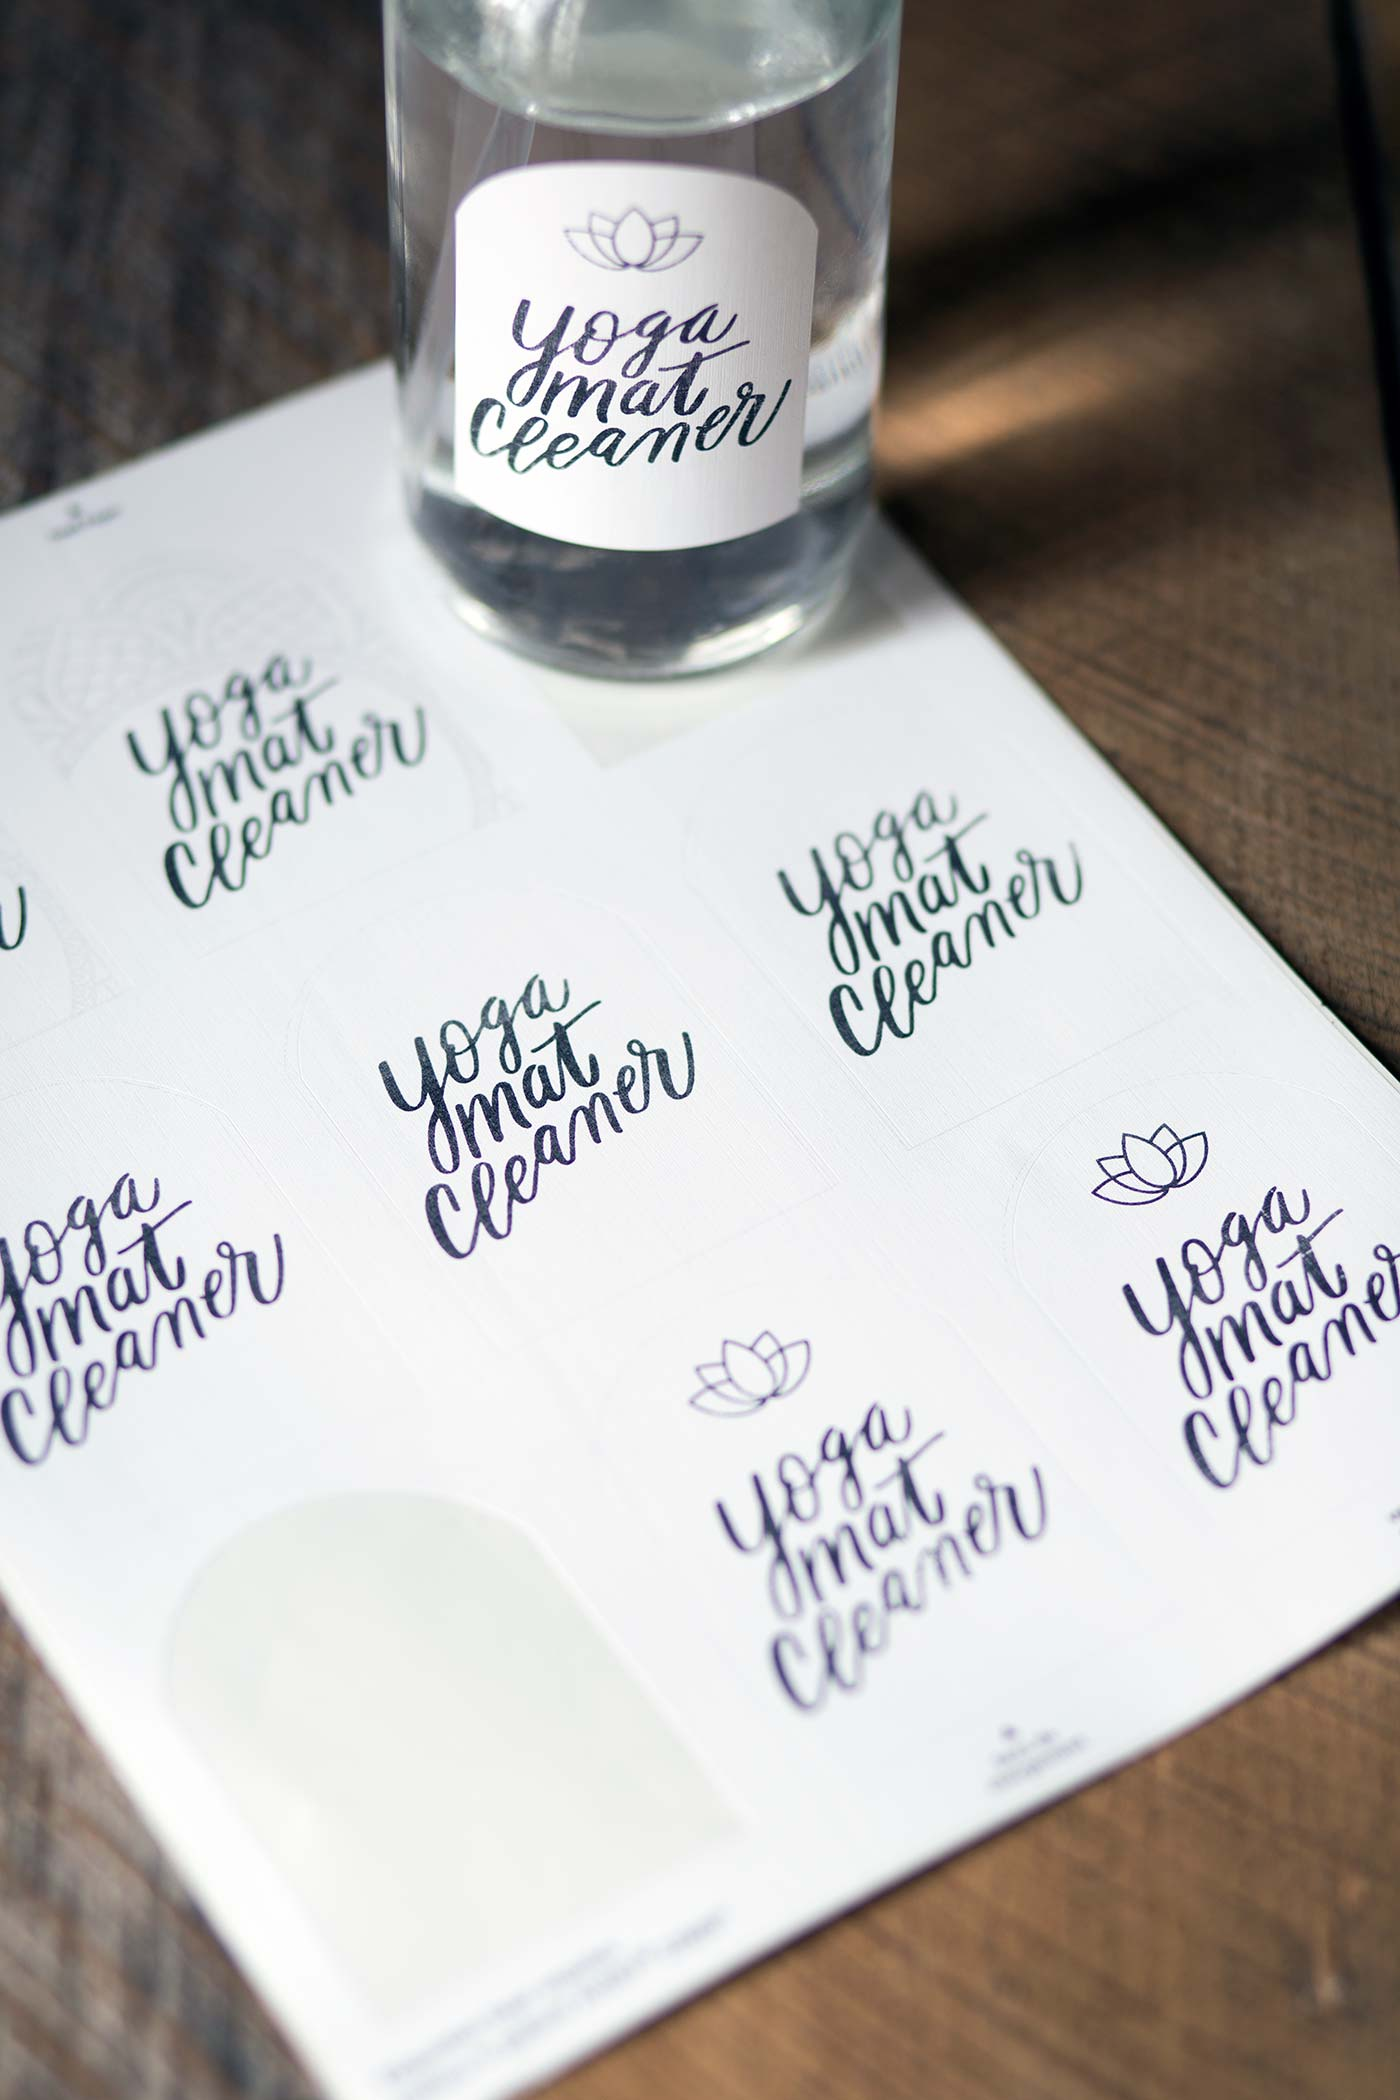 A photo of homemade yoga mat cleaner and free printable labels.